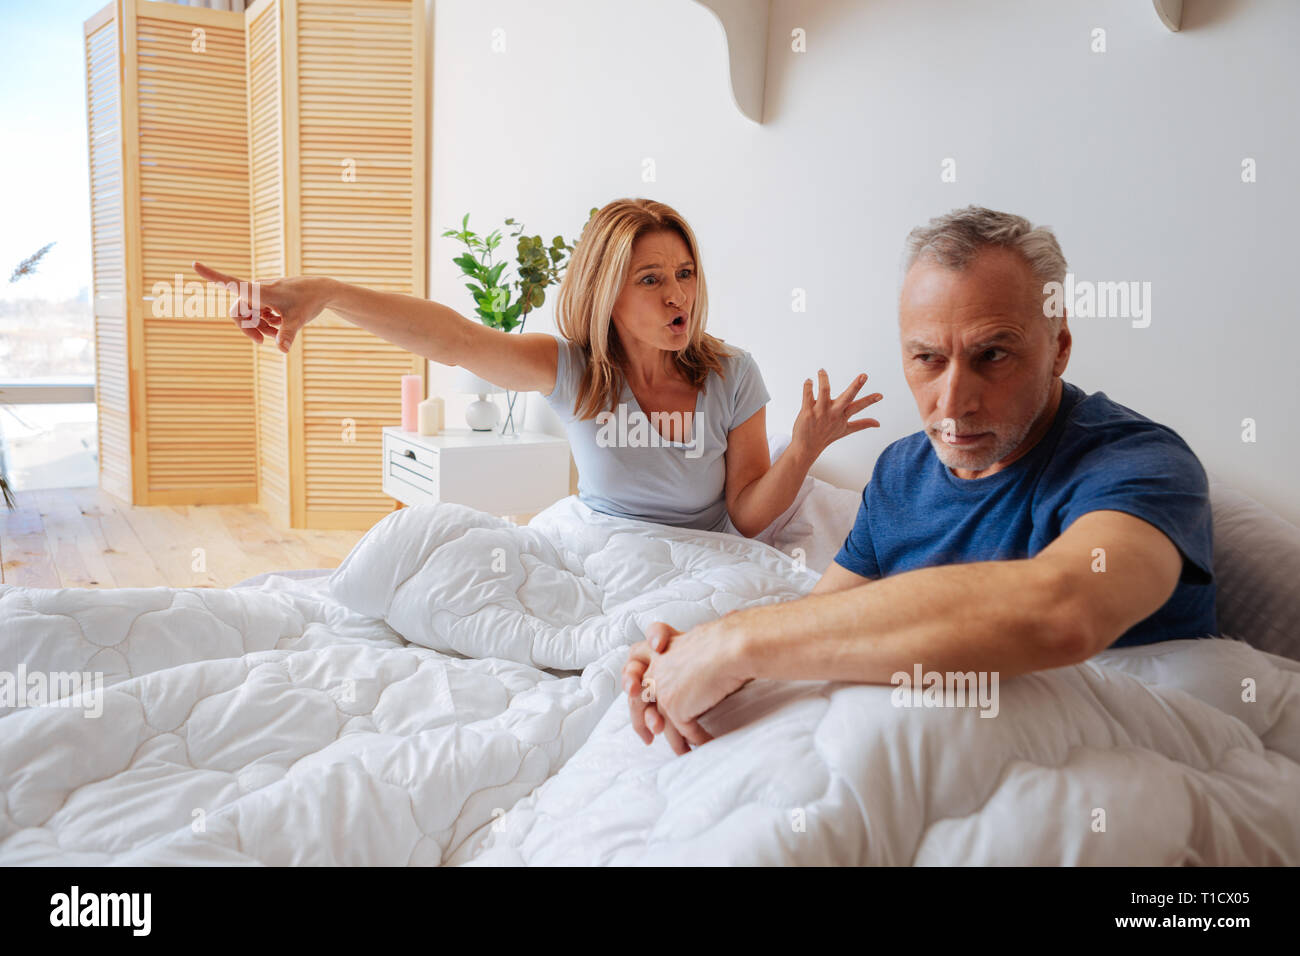 Emotional woman yelling at her husband after betrayal - Stock Image